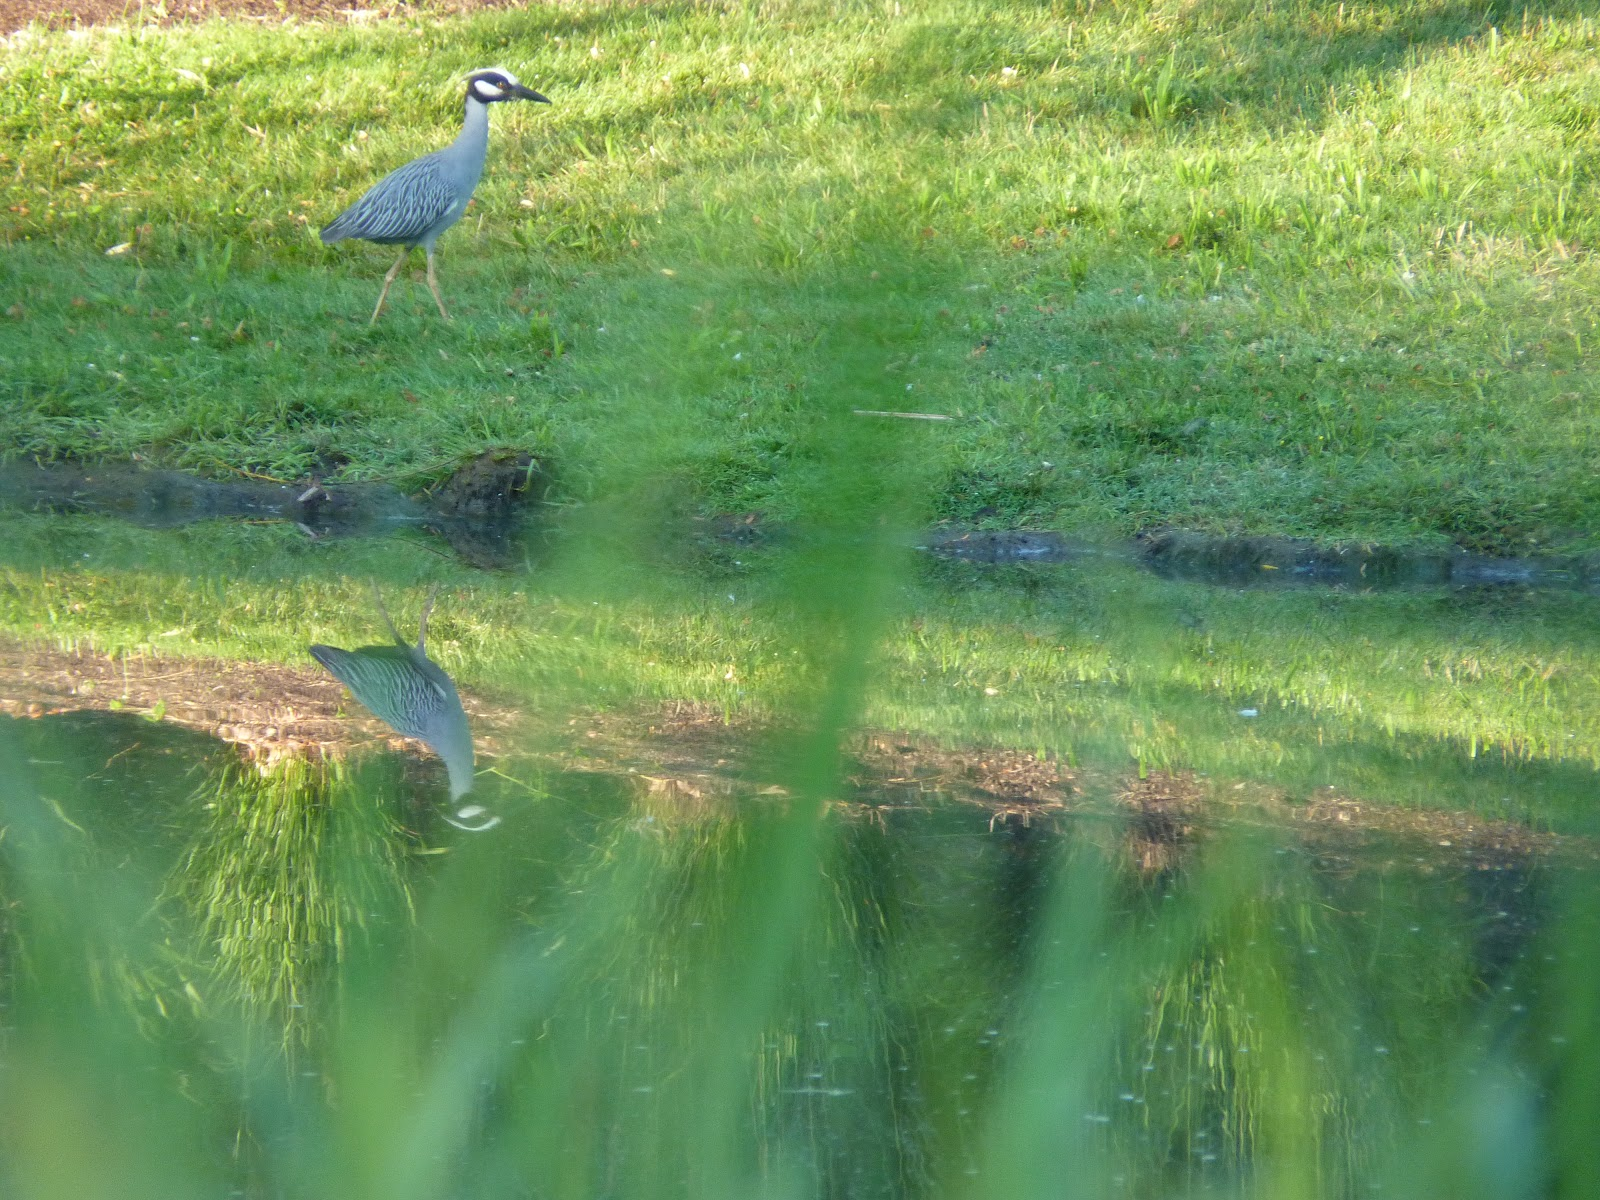 yellow-crowned night heron walking